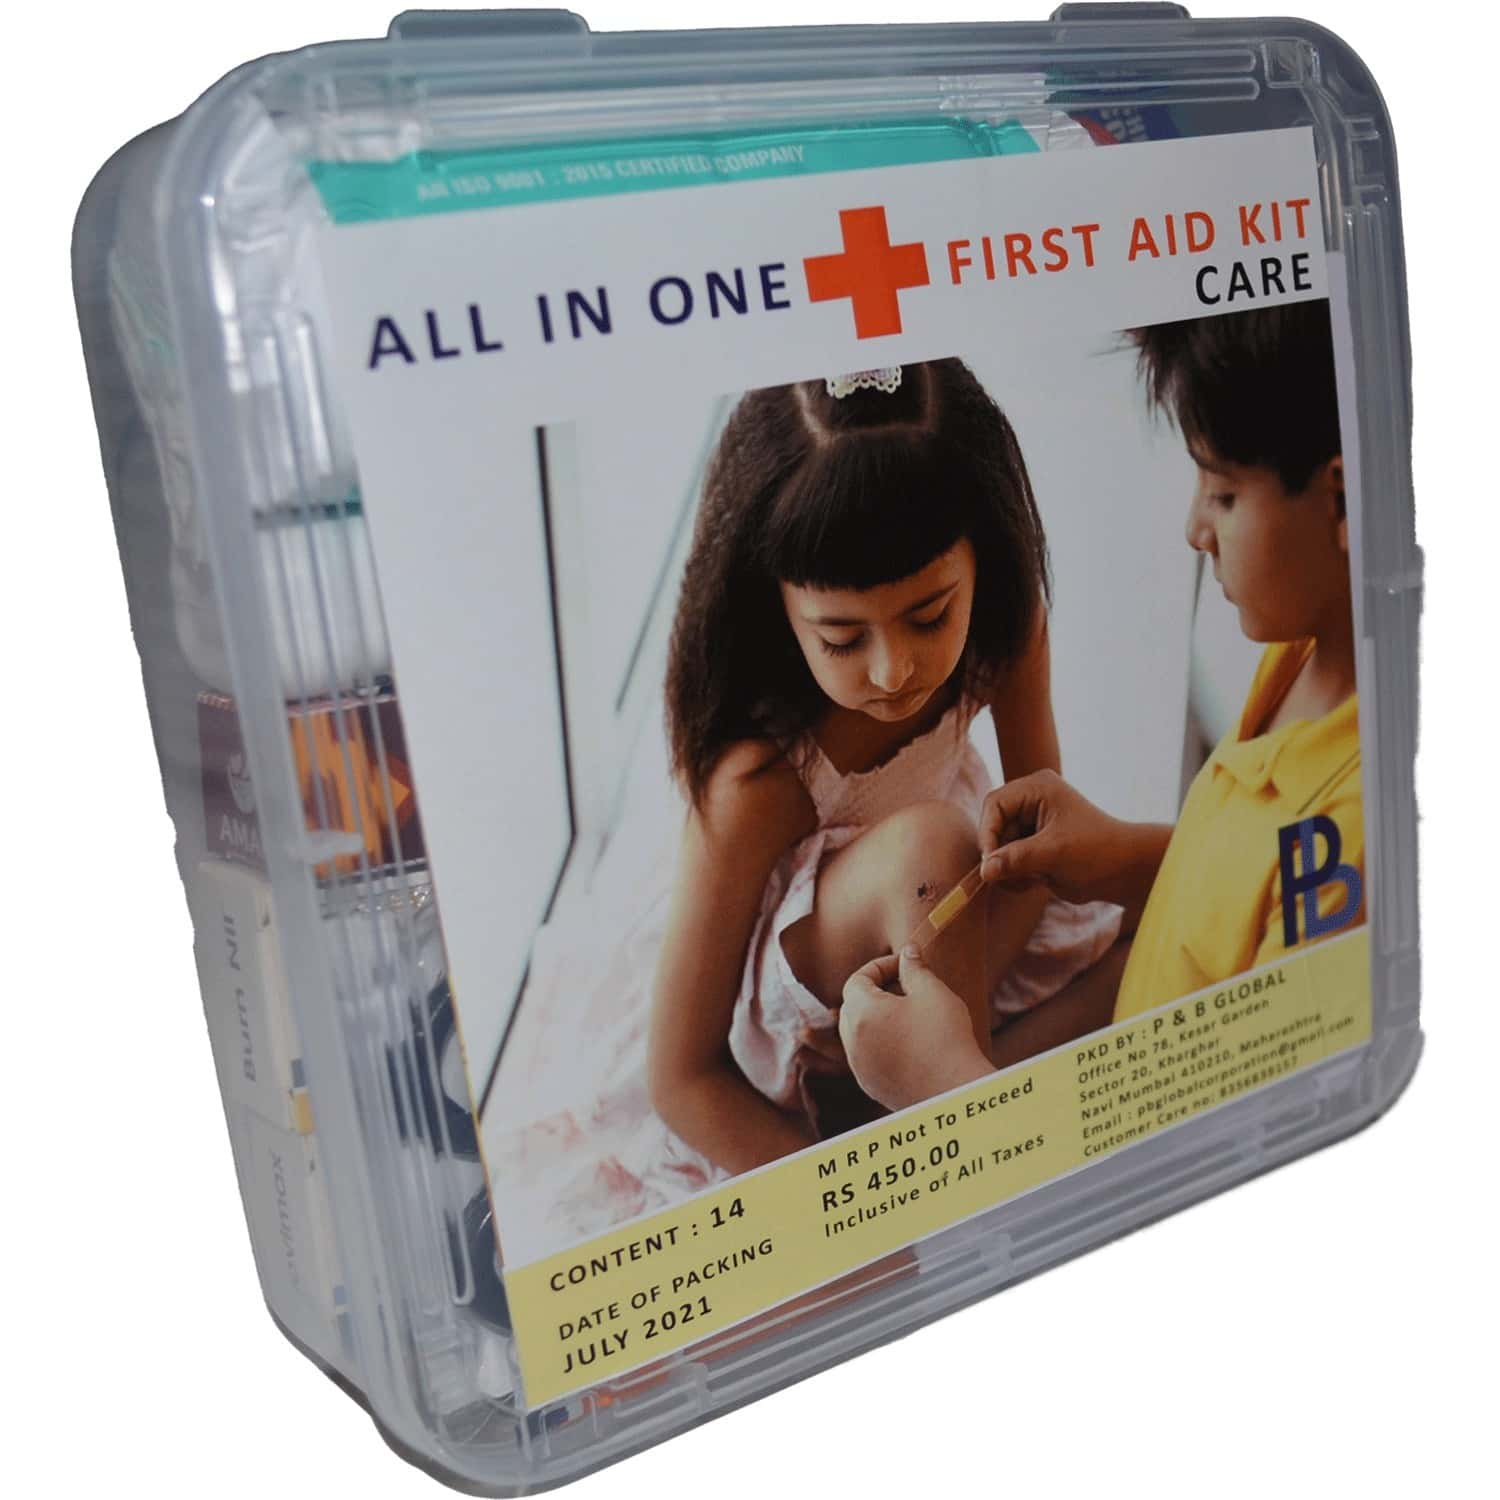 All In One First Aid Kit Care